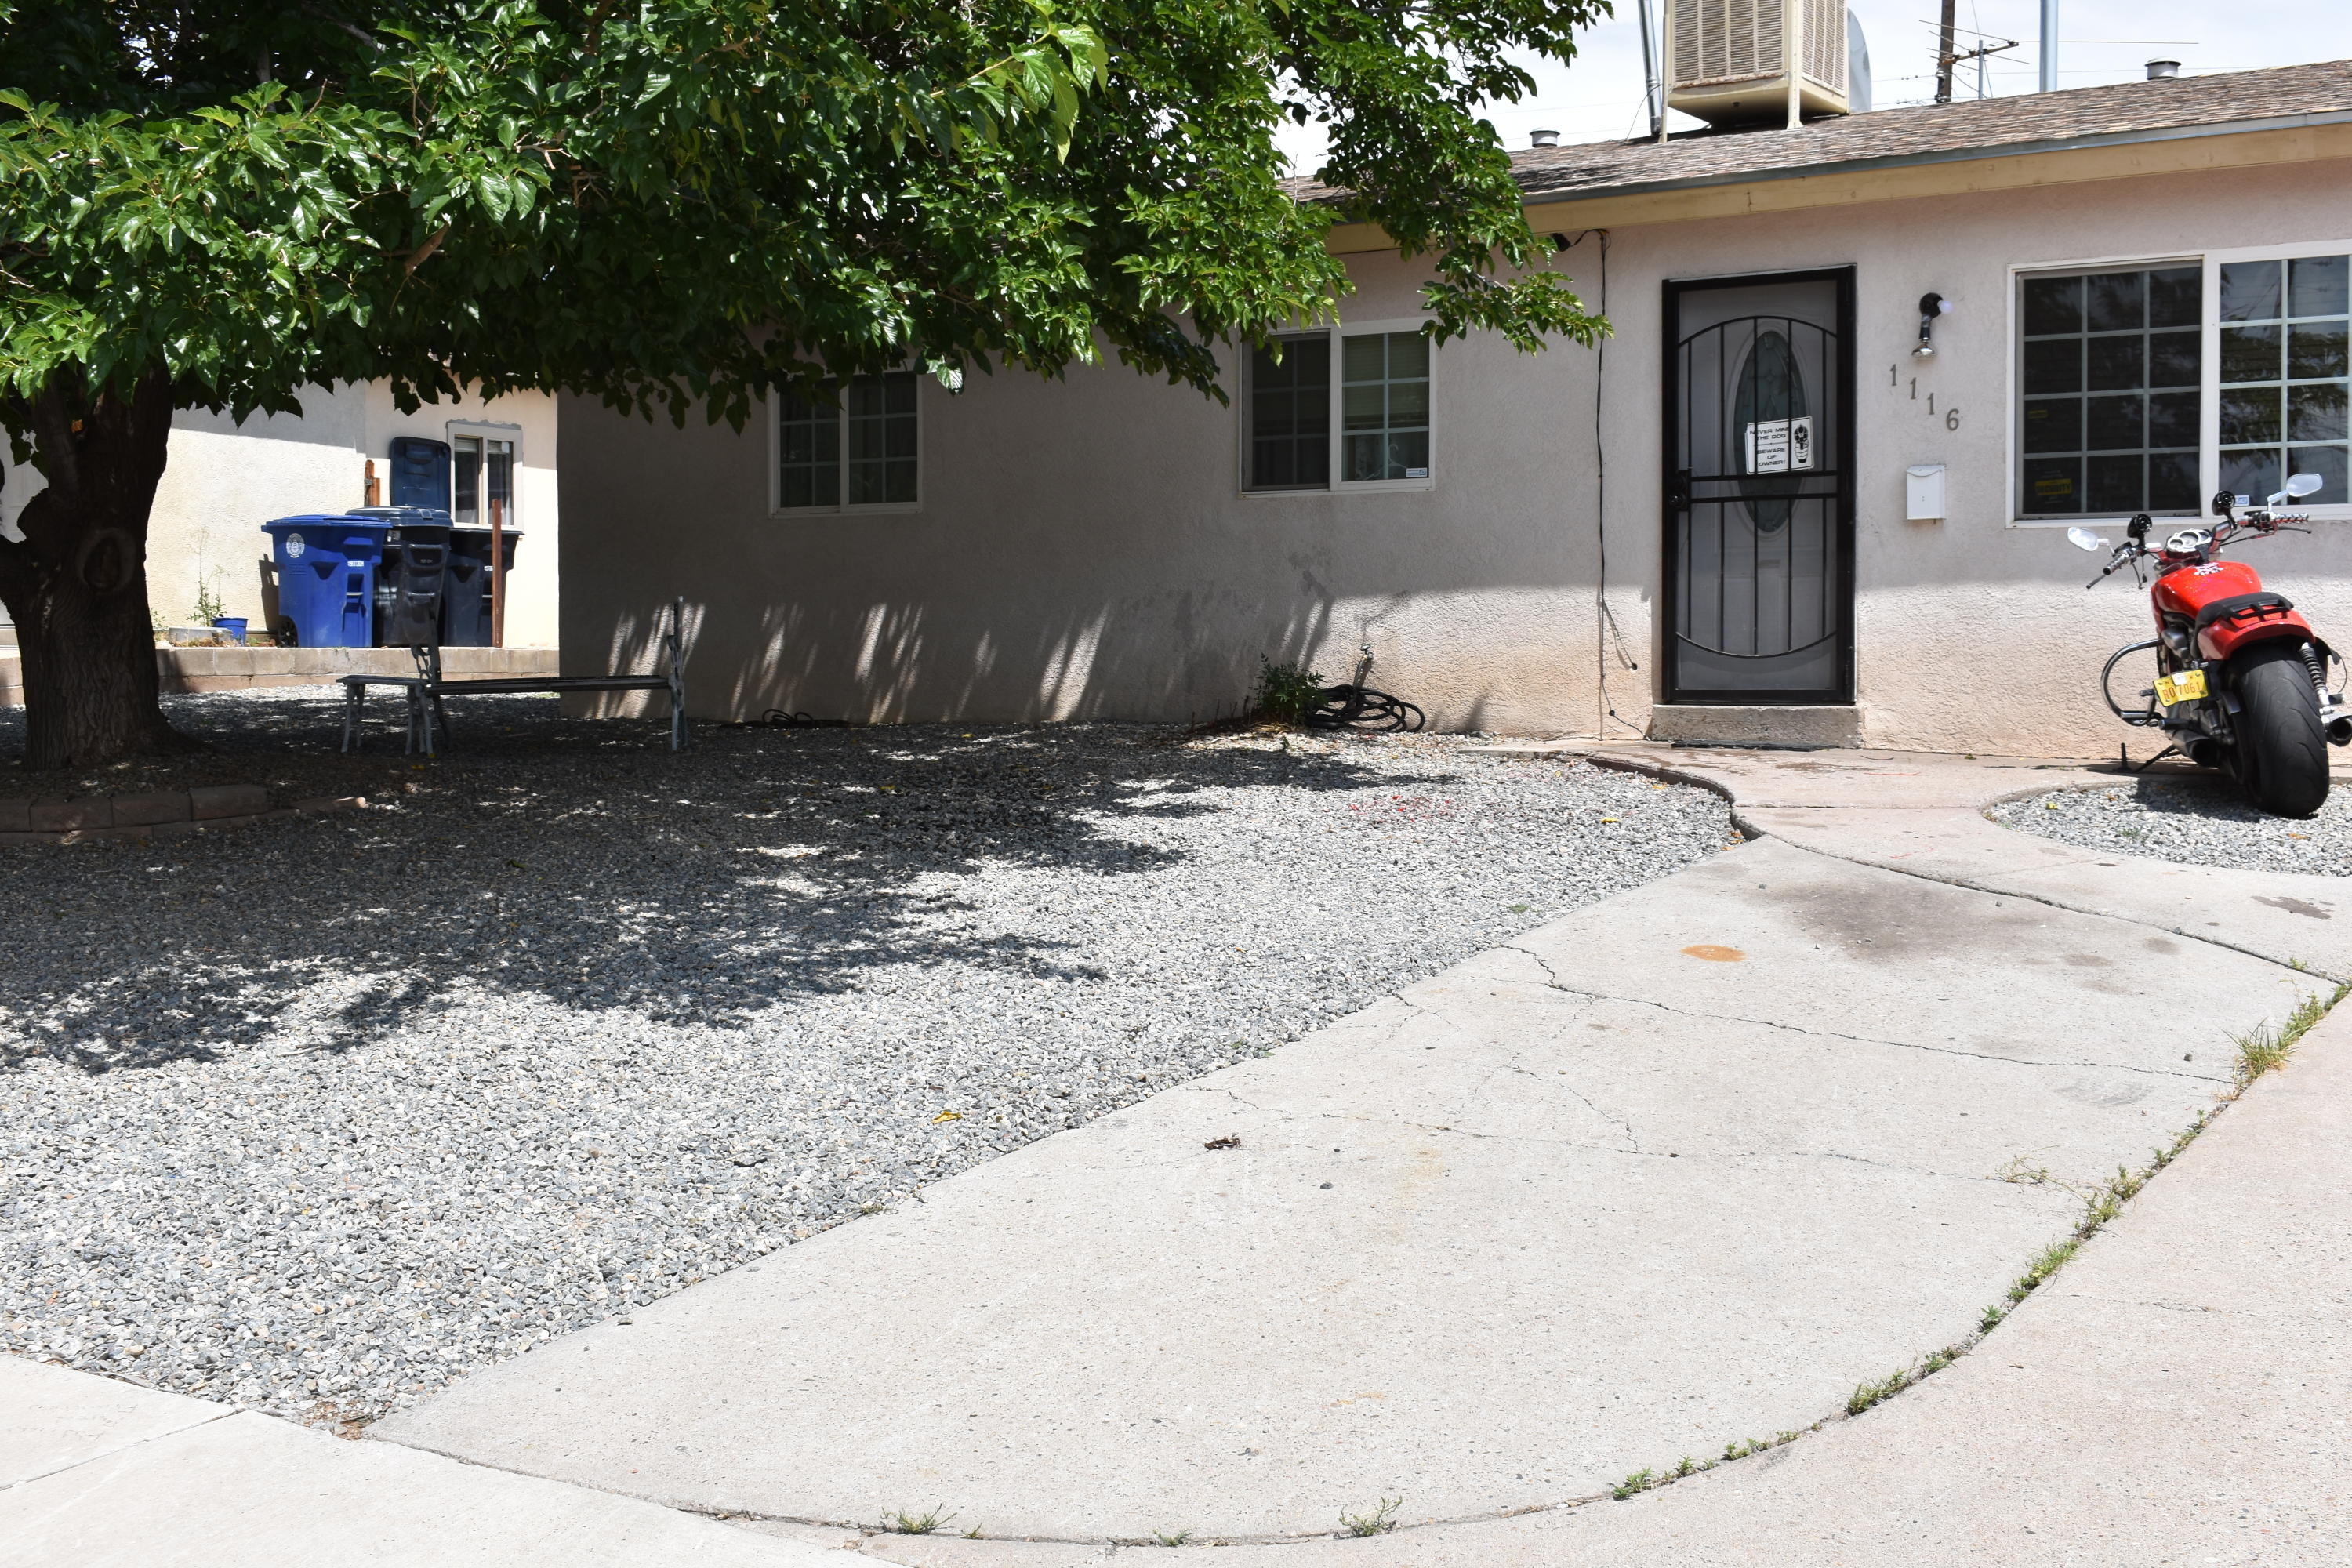 Under contact taking back up offers..Cute little starter home or investment property in the NE Heights close to shopping, restaurants and parks. Home has good bones, just needs updating. Your new home has 2 bedrooms, 1 bathrooms and a 2 car garage. Phenomenal location and price!